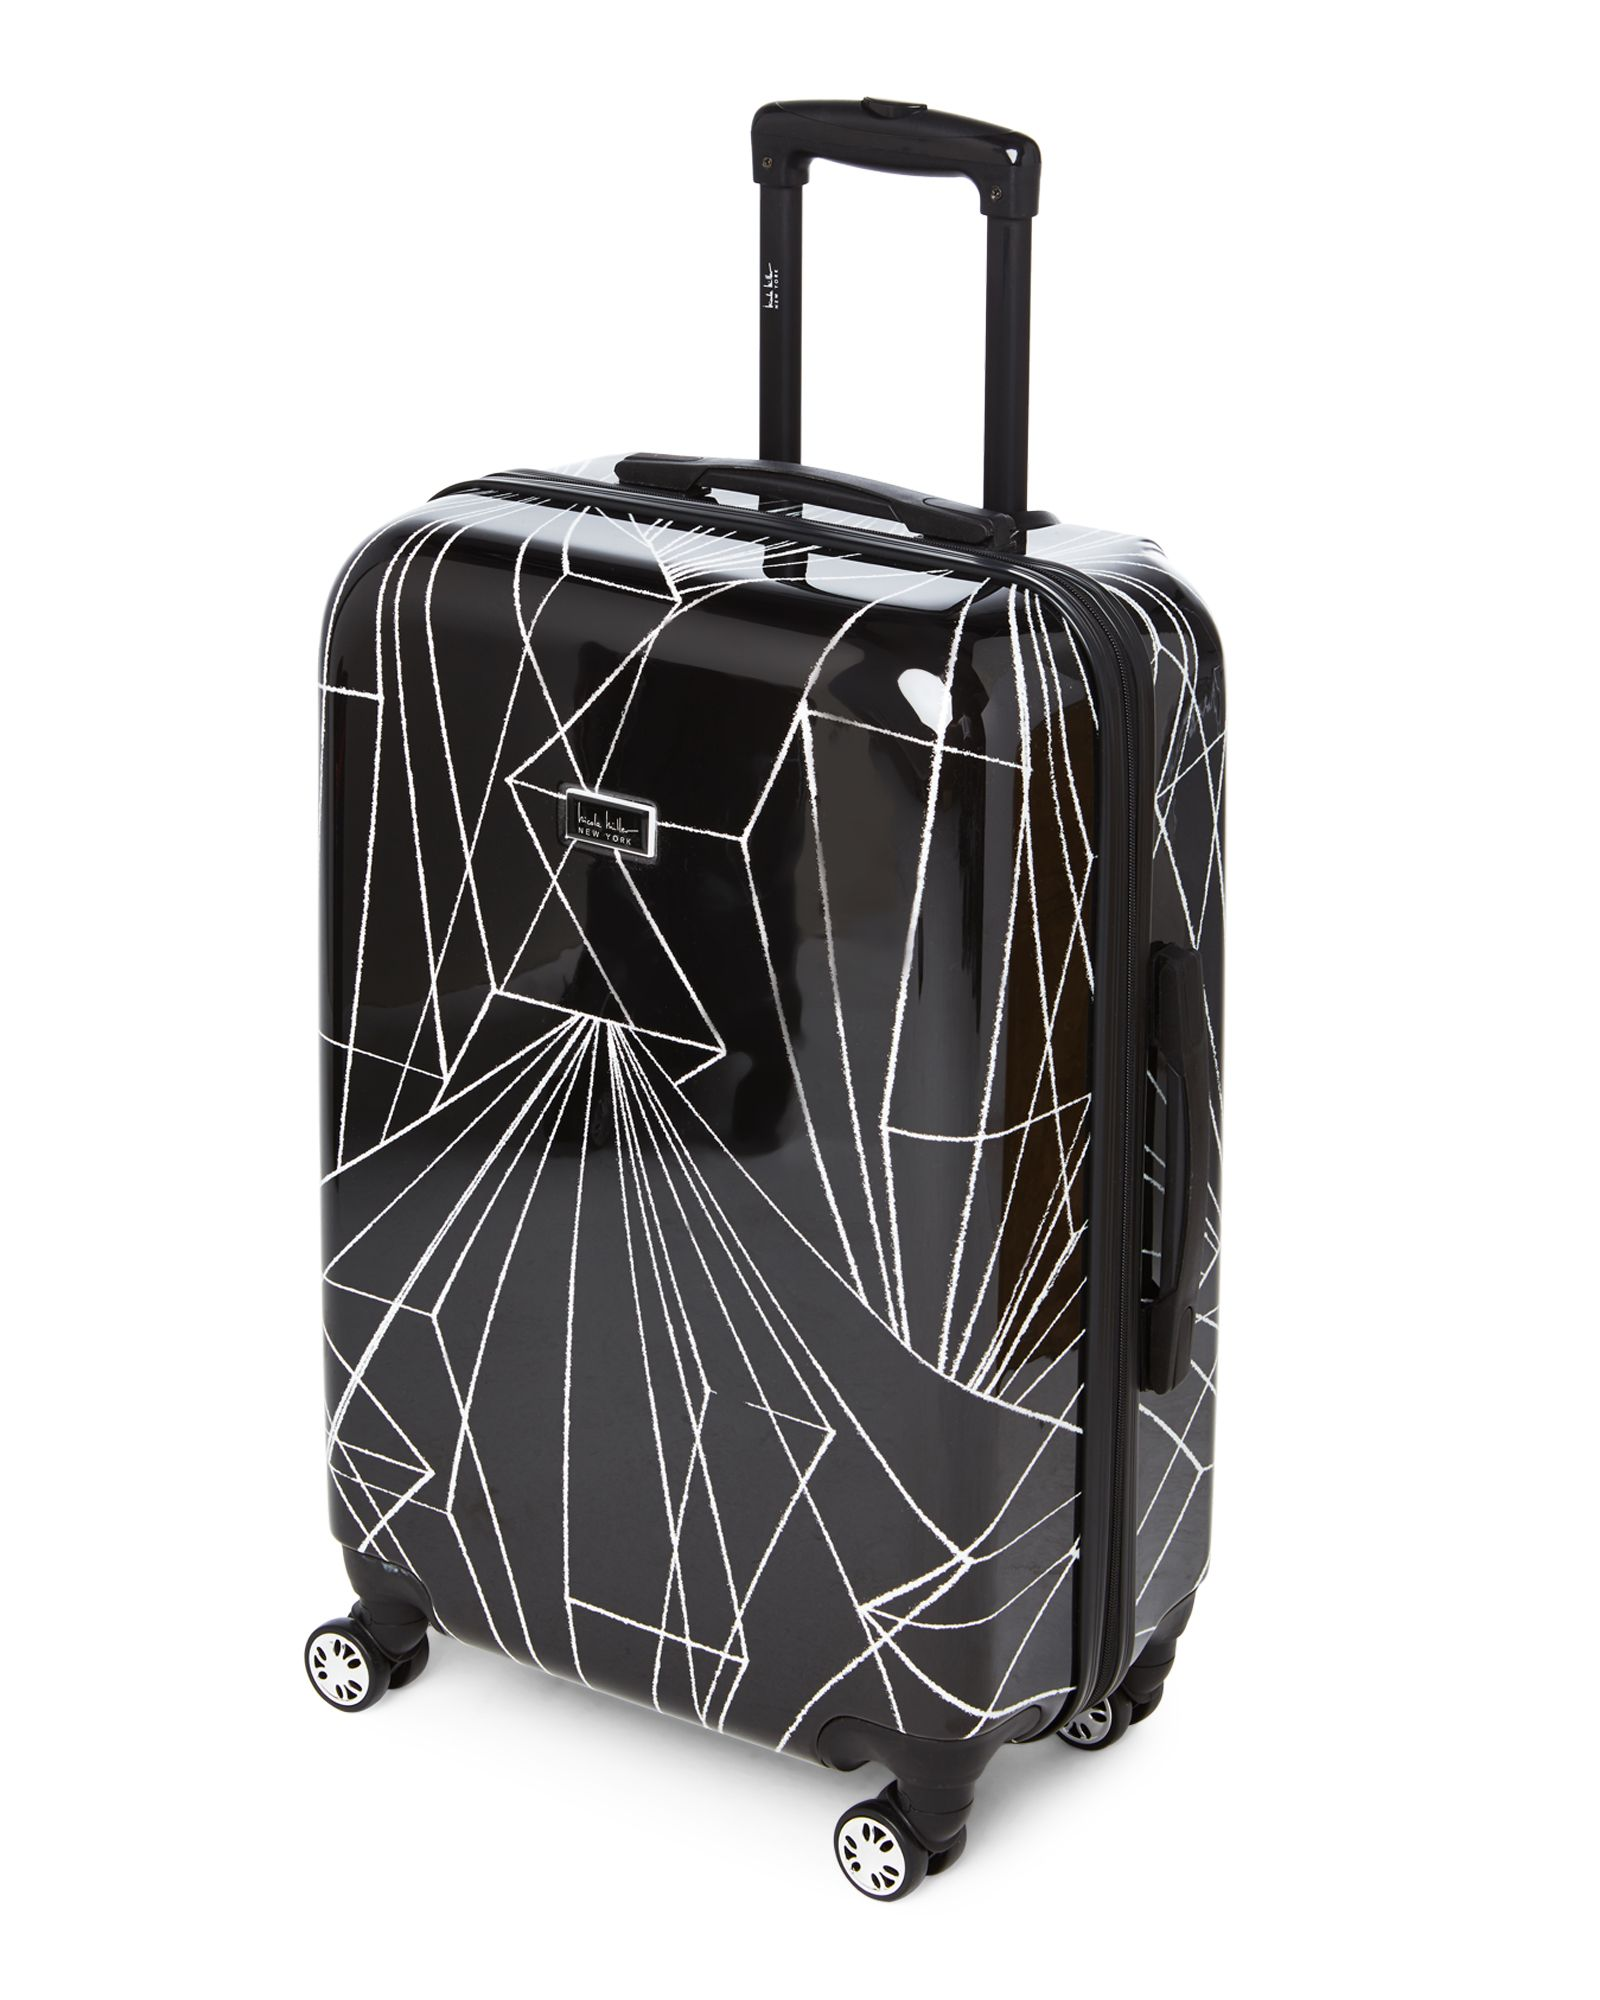 Nicole Miller 24 Linear Upright Spinner Gym Leotards Travel Luggage Bags